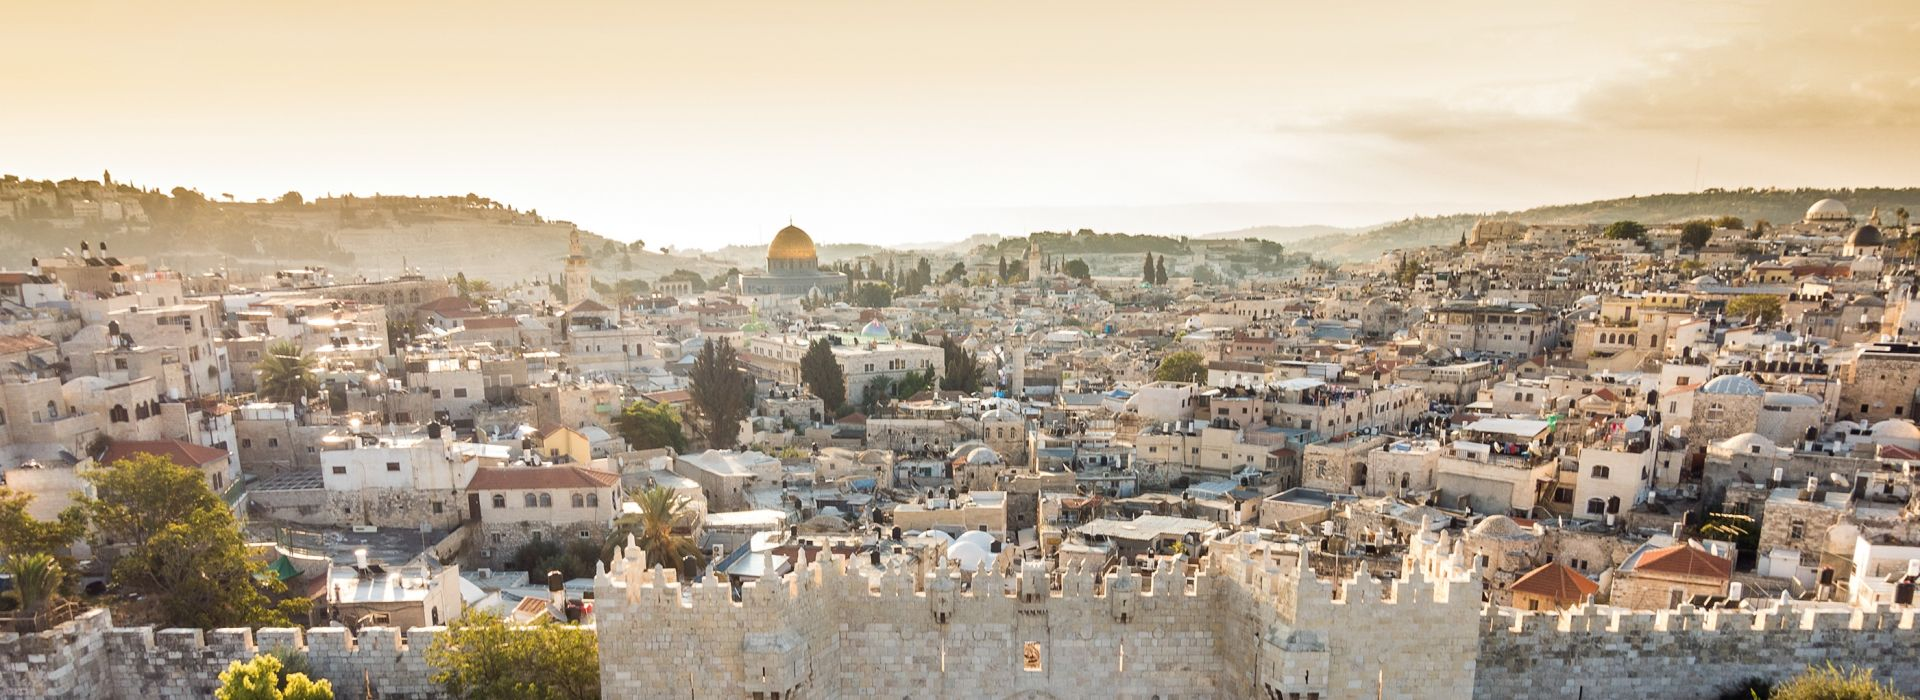 39 Best Israel Tours Amp Holiday Packages 2018 2019